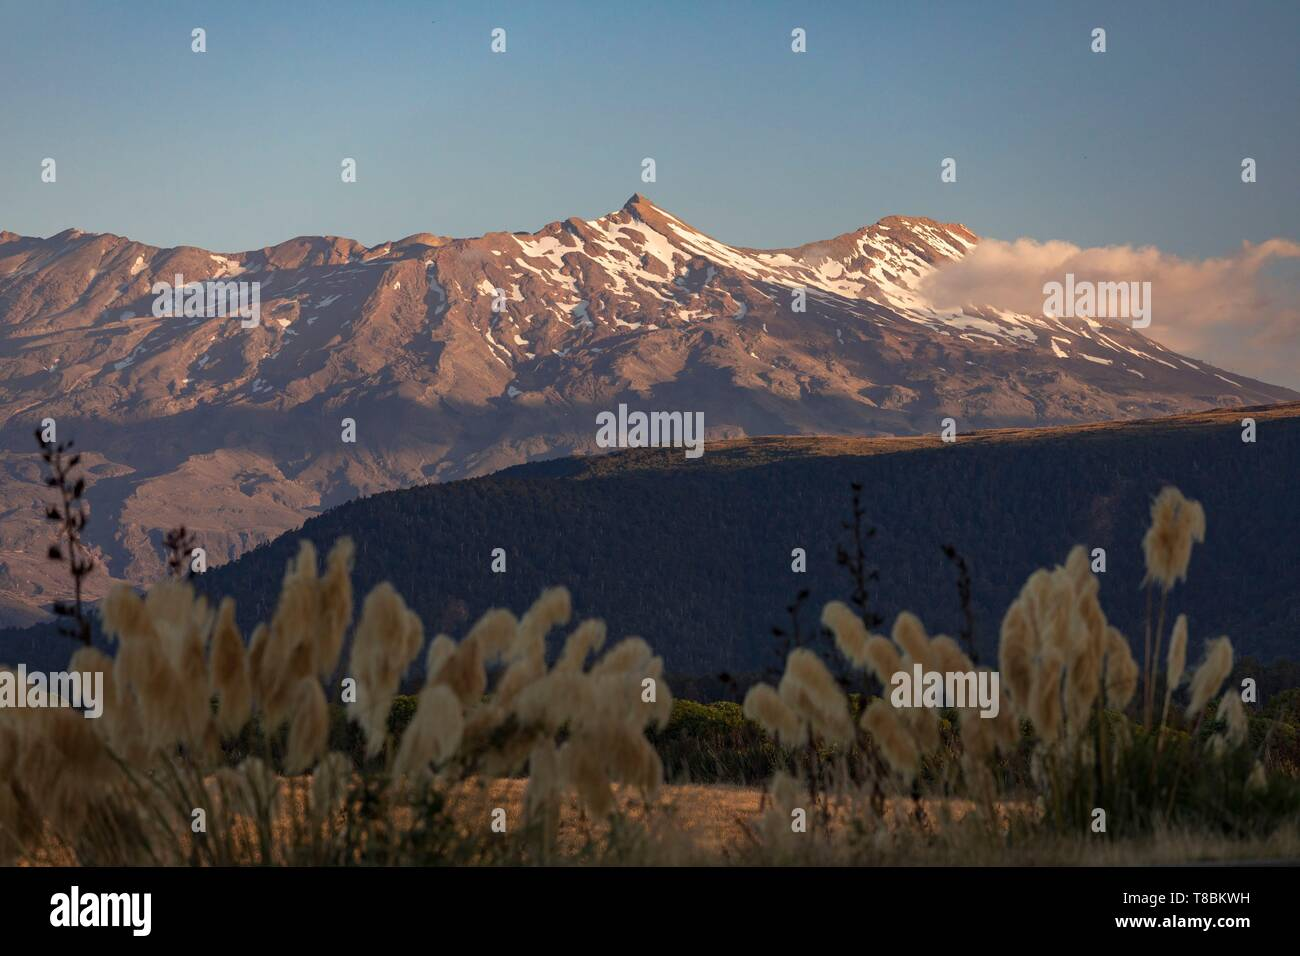 New Zealand, North Island, Waikato region, Tongariro National Park, labelled Unesco World Heritage Site, mount Ruapehu 2797 m - Stock Image